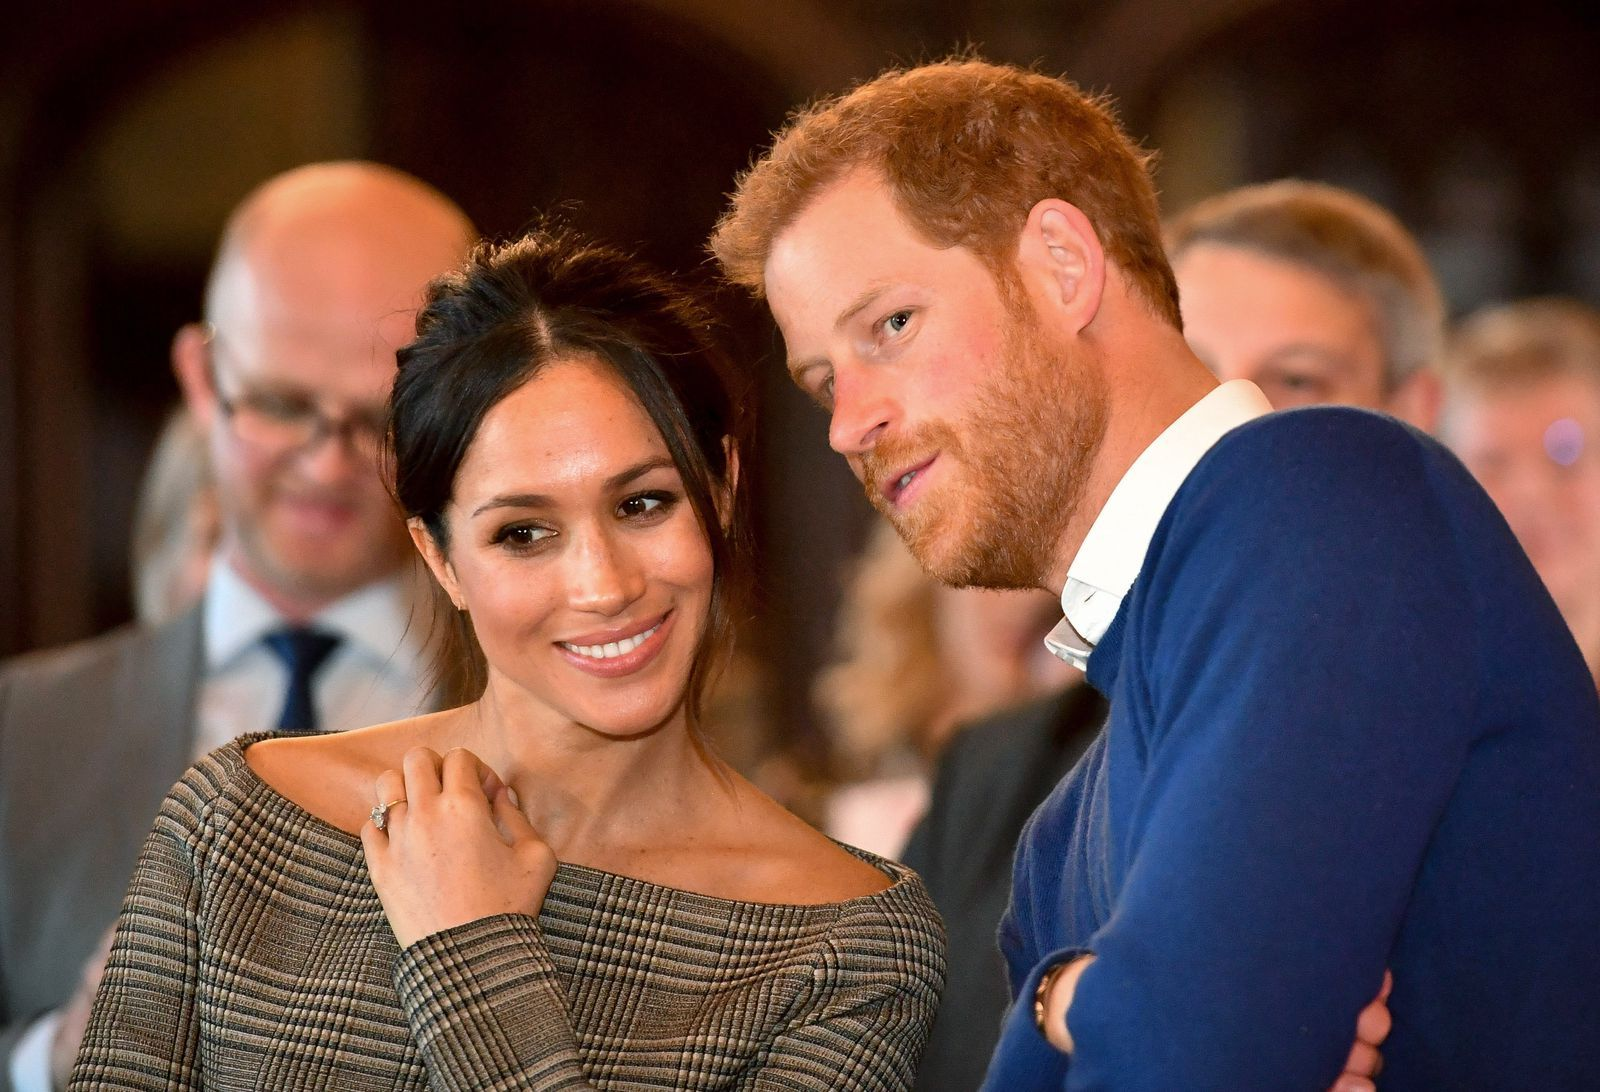 Watch Here's how Meghan and Harry are celebrating tonight at the Royal Wedding party video